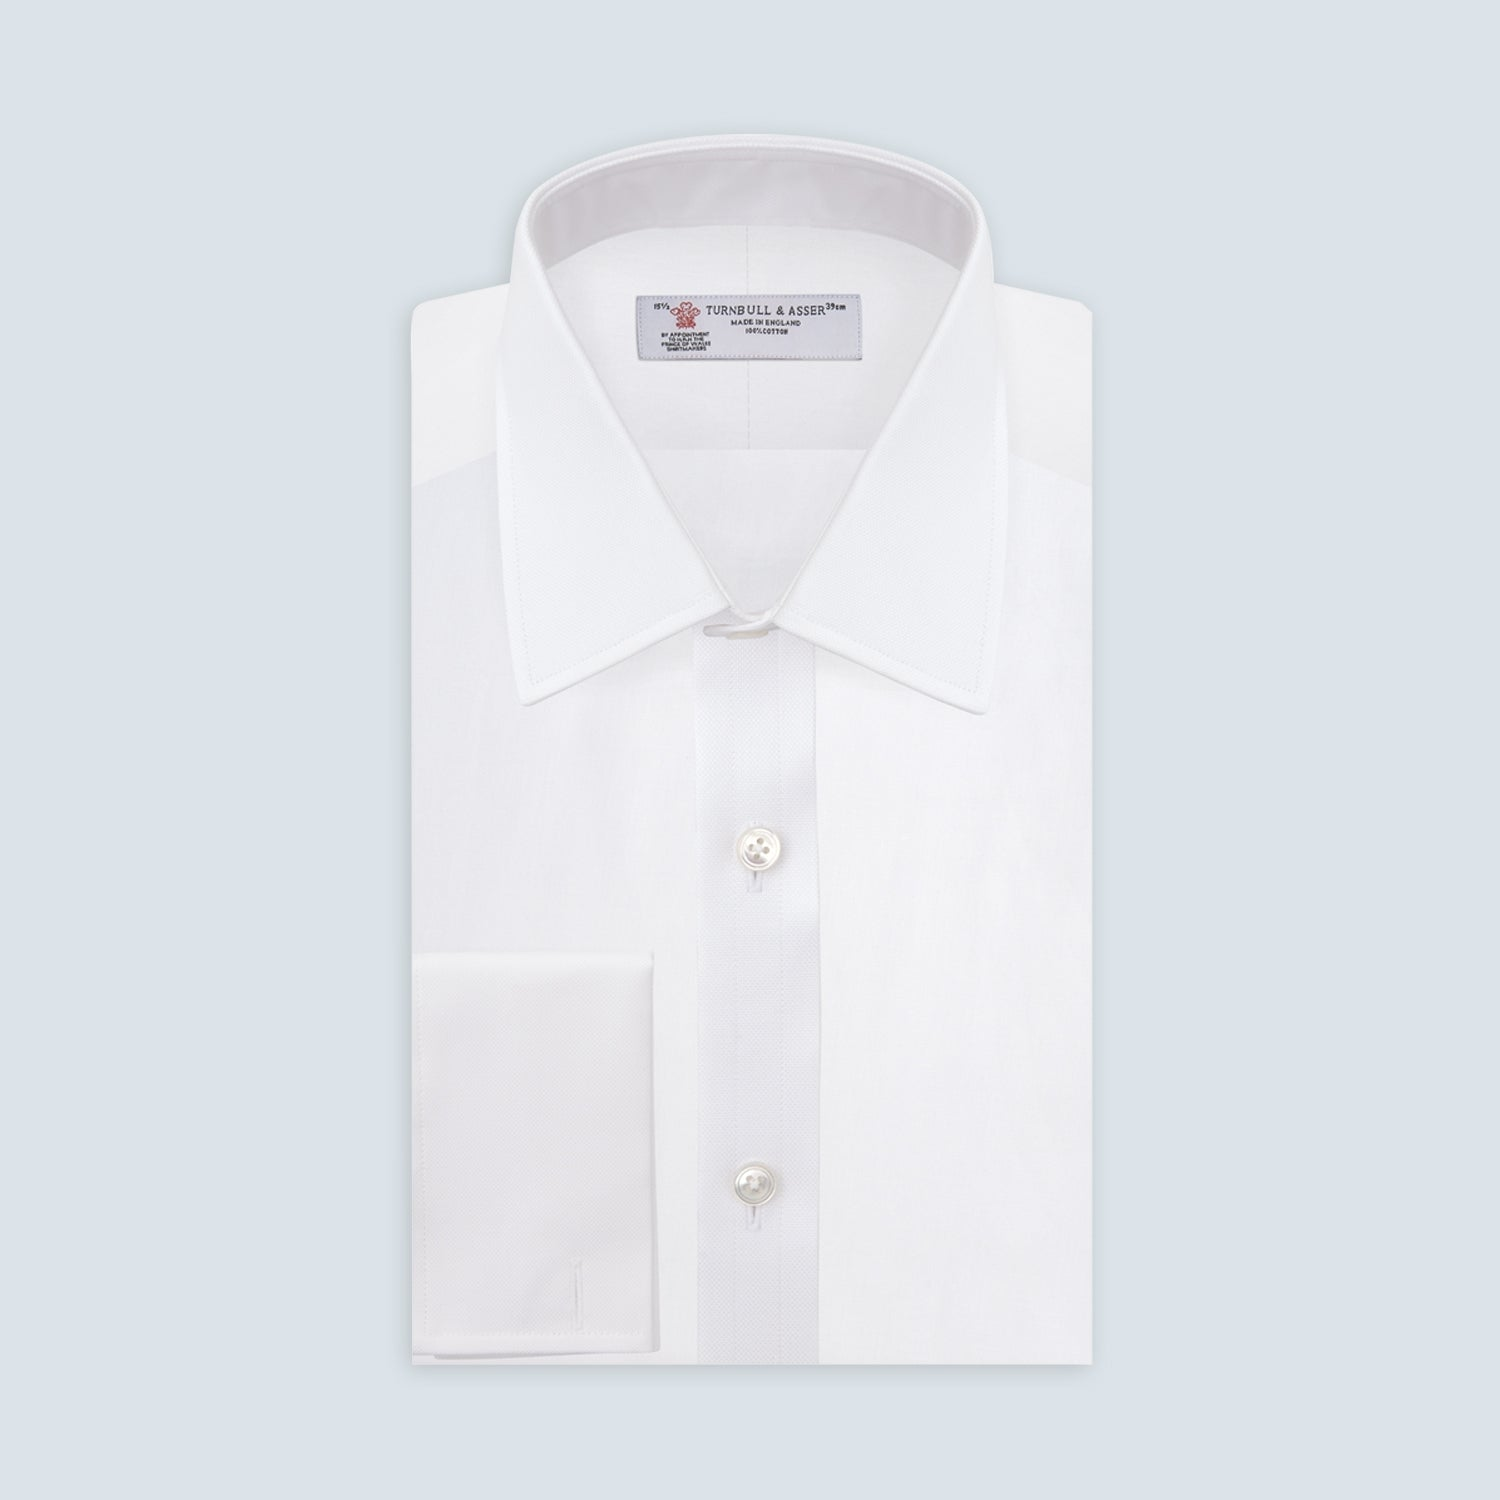 White Superfine Oxford Cotton Shirt with T&A Collar and Double Cuffs